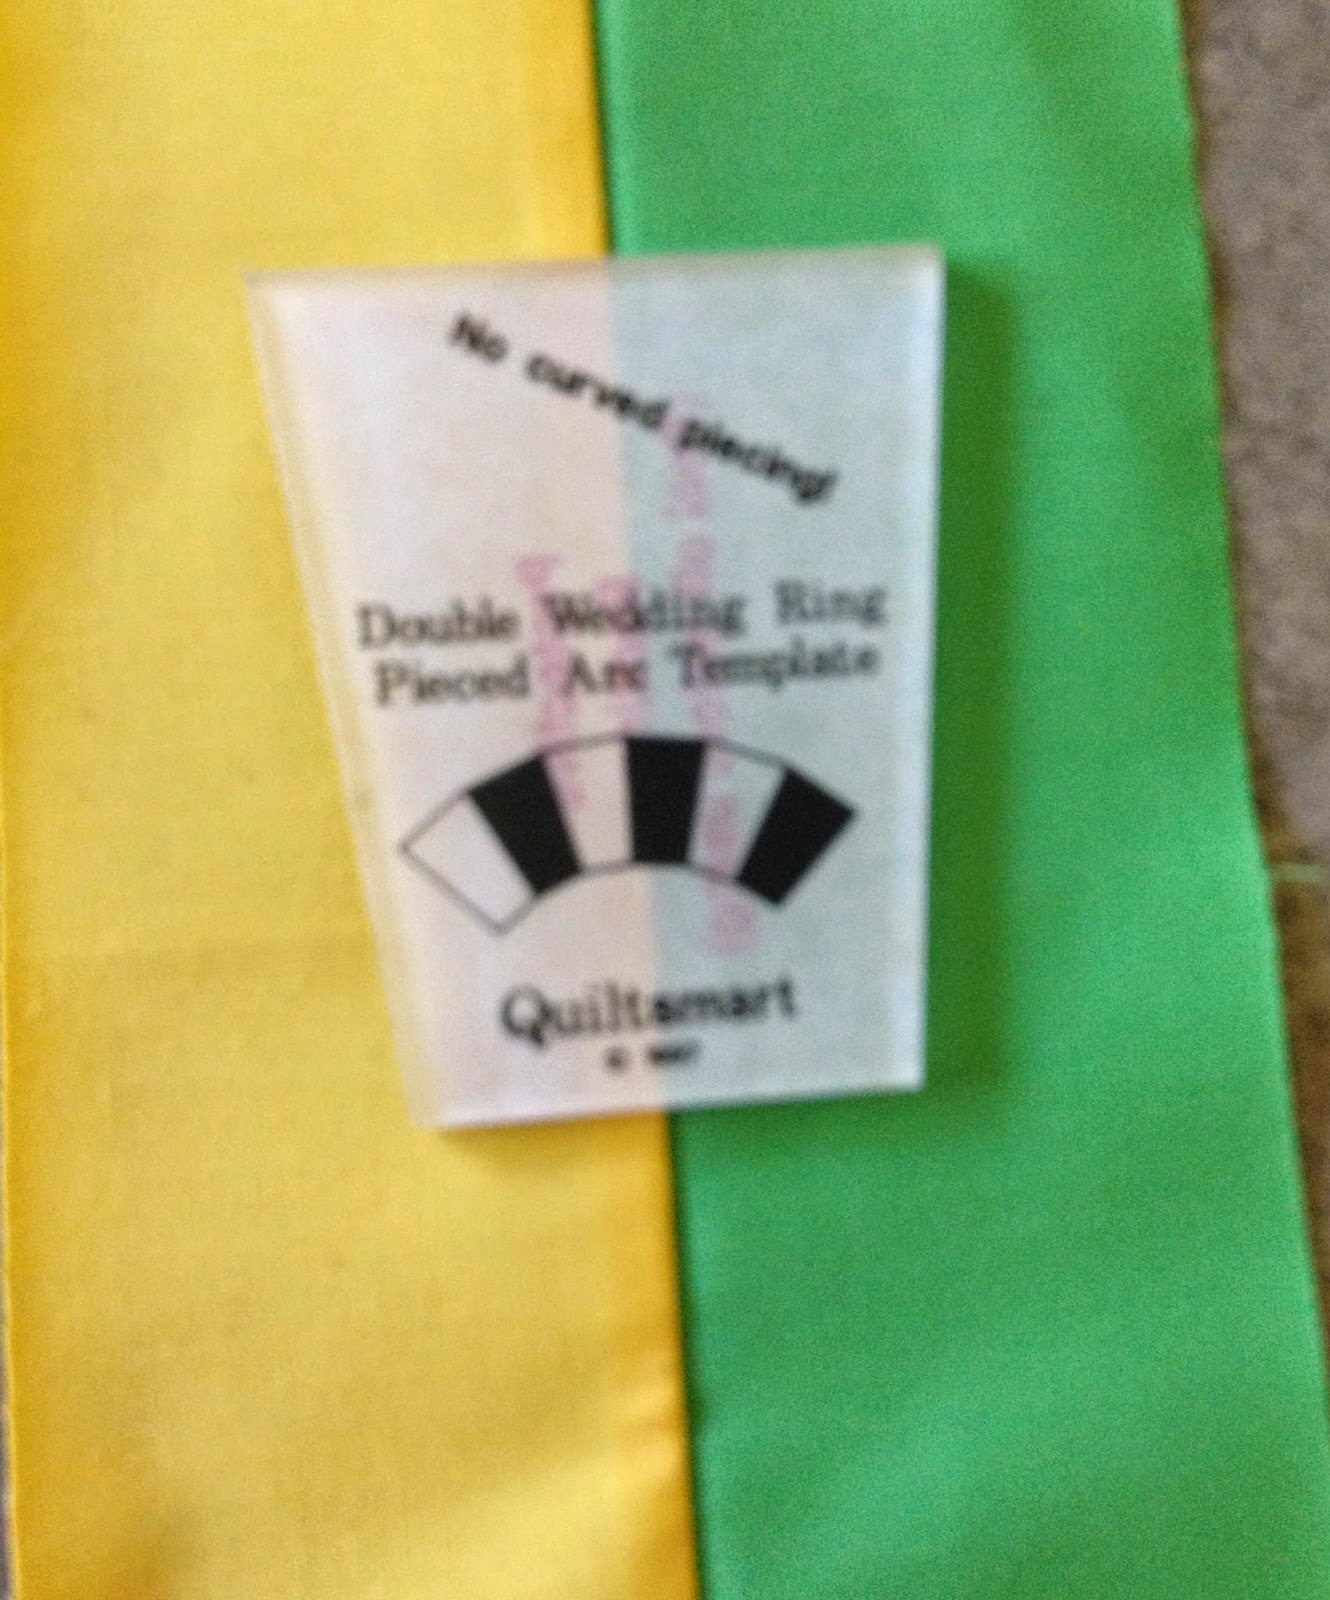 quiltsmart double wedding ring template with pieced fabric